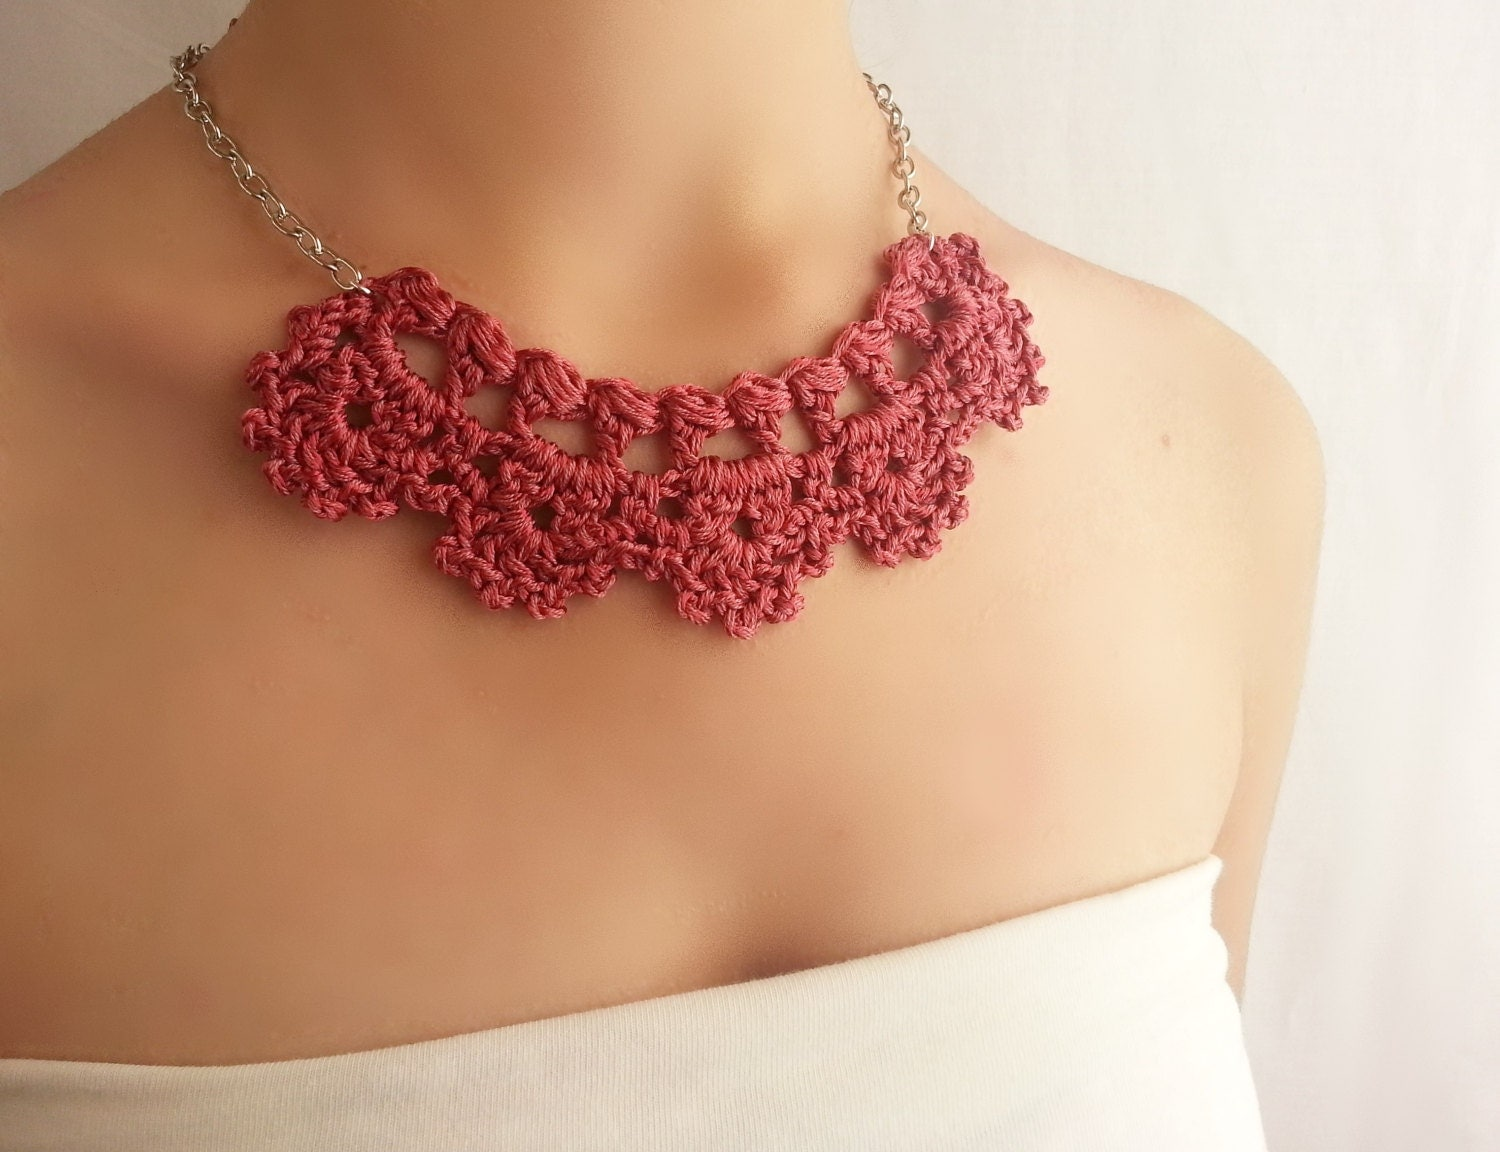 marsala necklace dainty necklace etsy handmade jewelry